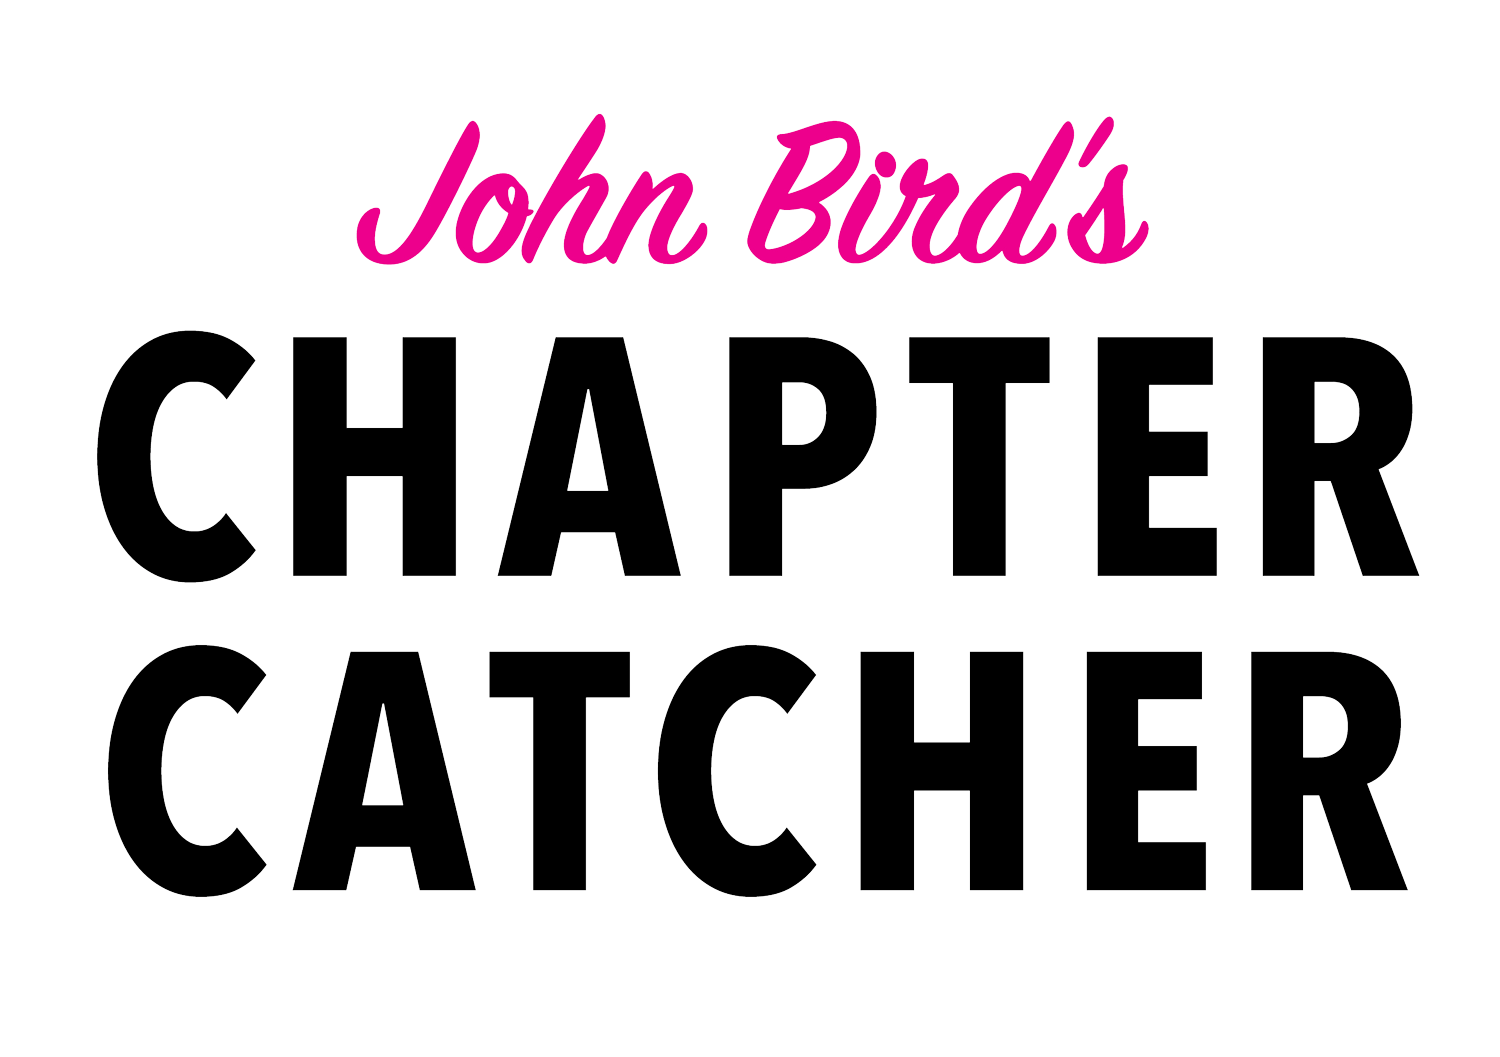 John Bird's Chapter Catcher